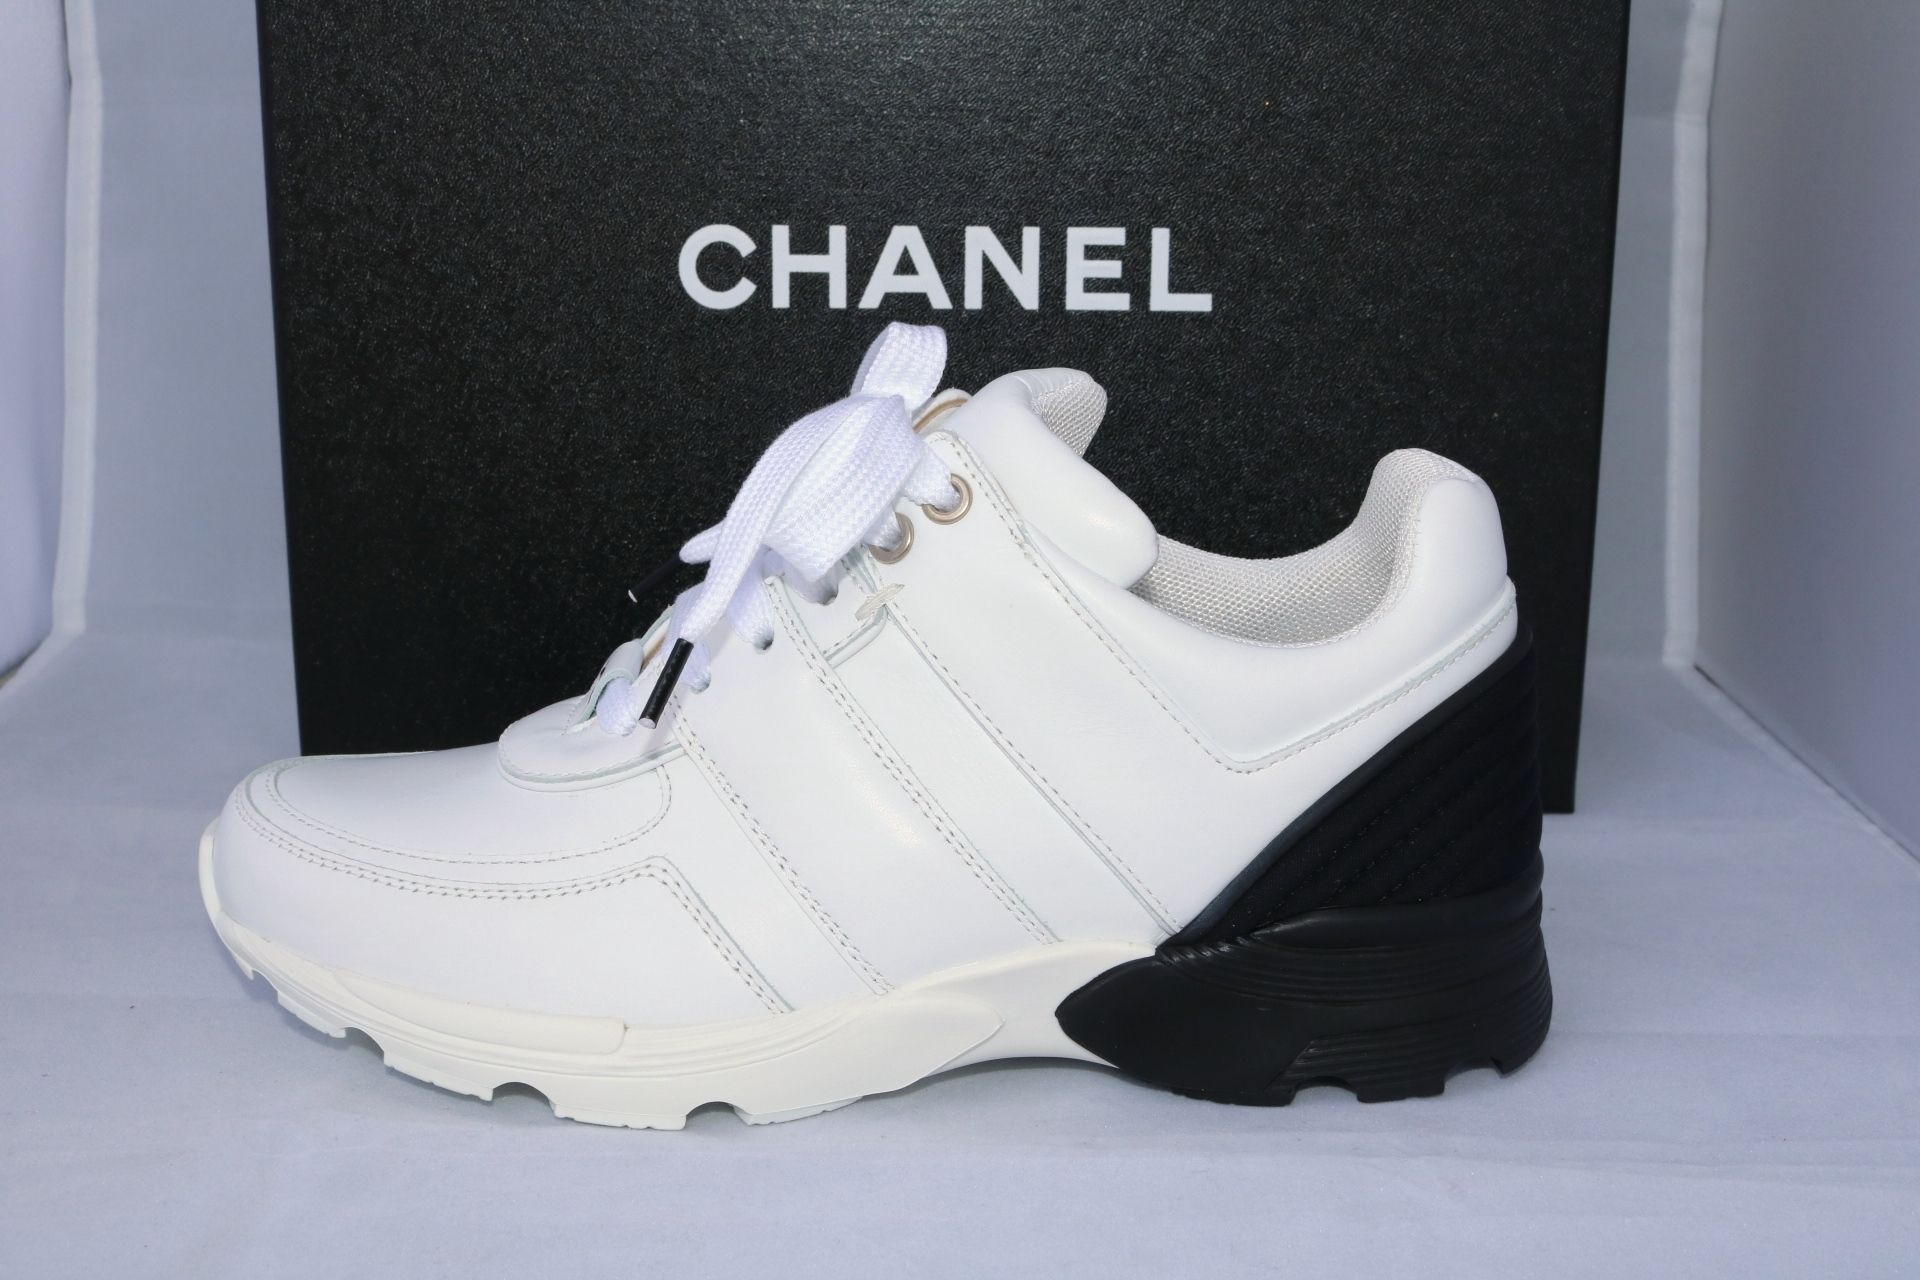 86c0f13d6dddb Chanel 2016 Cc Logo Black Leather Mesh Sneakers Tennis Trainers 36.5 White  Athletic Shoes. Get the must-have athletic shoes of this season!